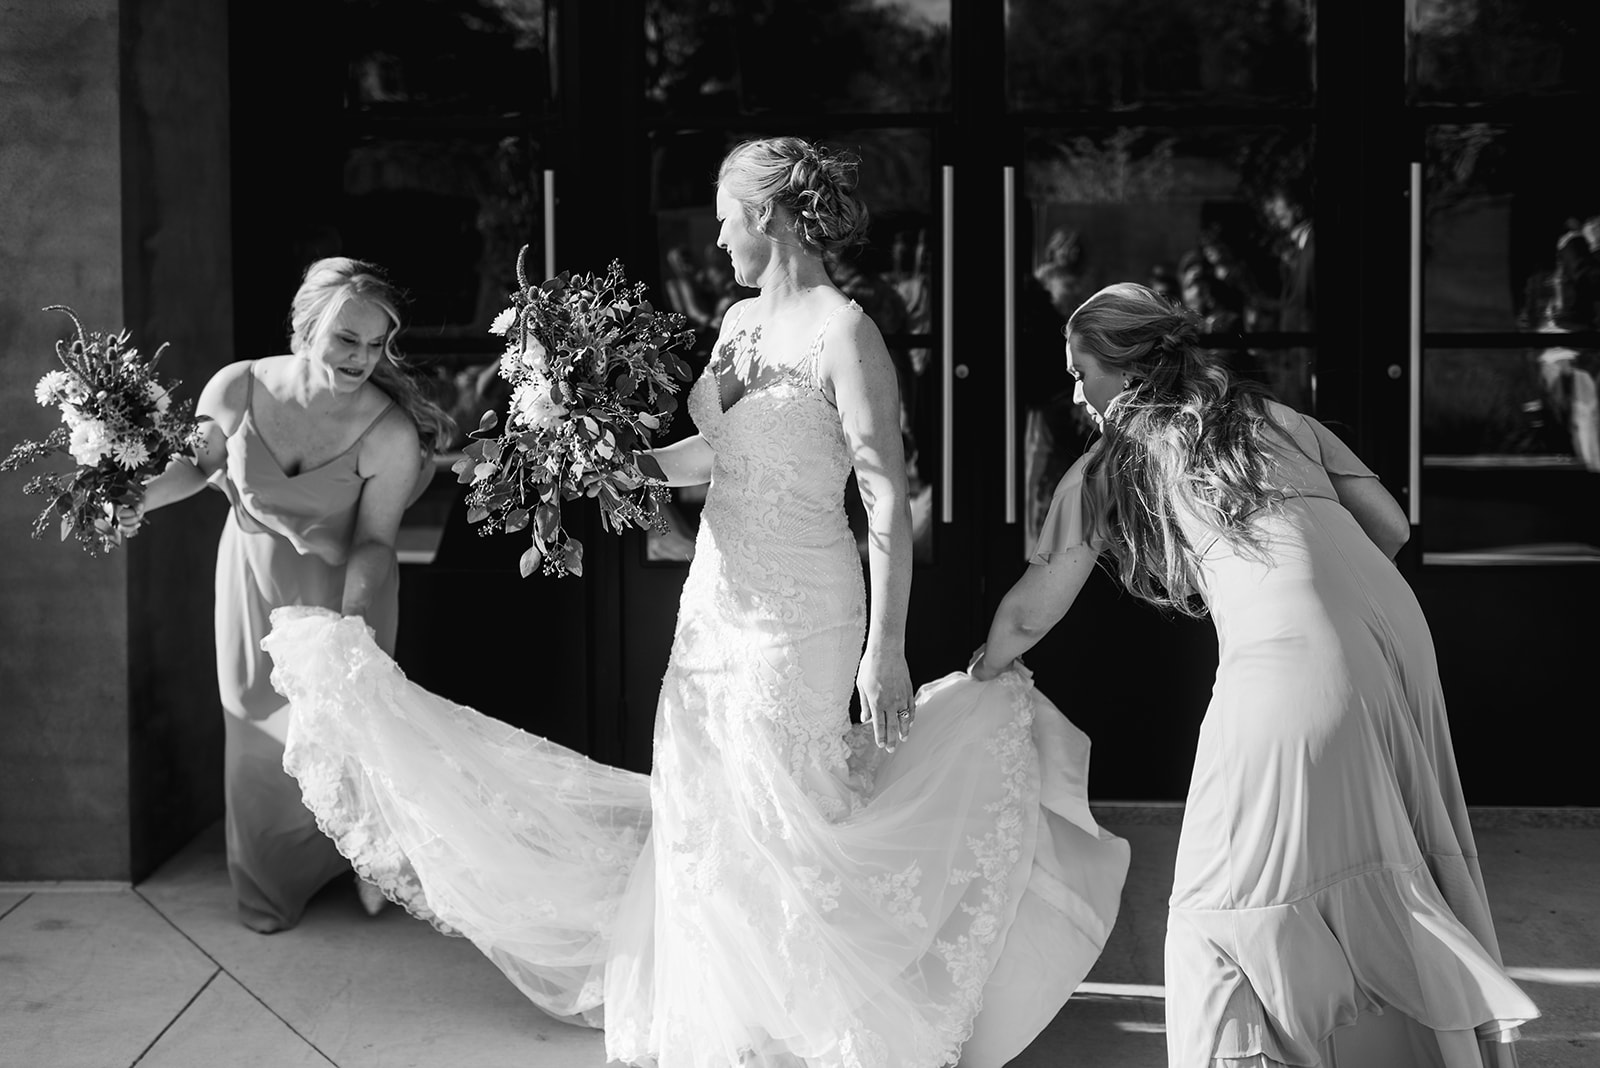 Bridal party photo: Nashville wedding at Clementine featured on Nashville Bride Guide